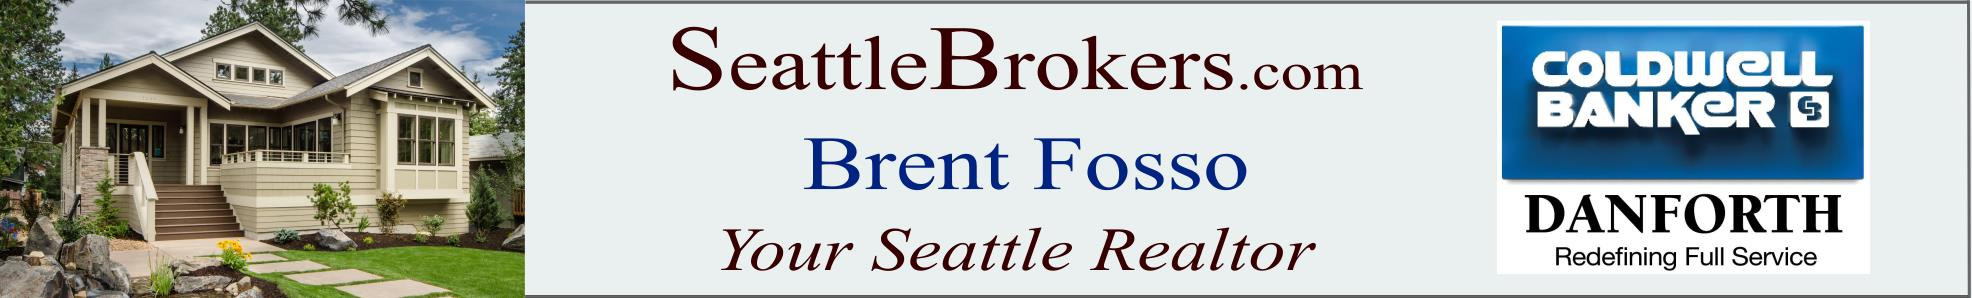 Your Seattle Realtor